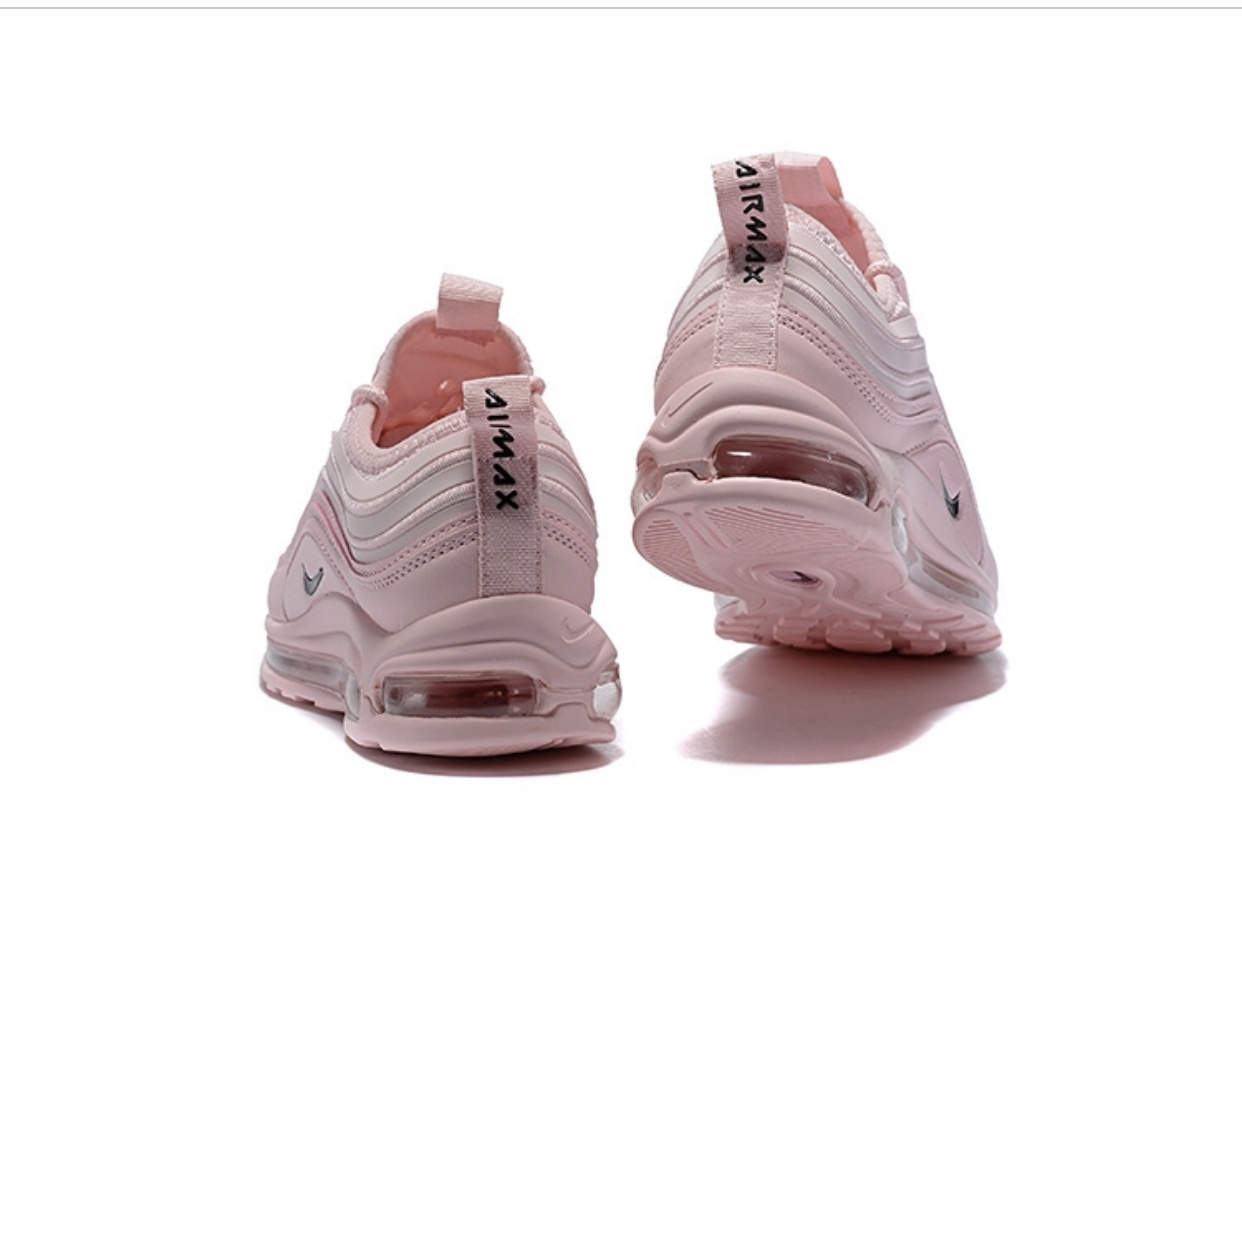 Nike Air Max 97 Ultra SE Barely Rose Elemental Rose 917704 909 Womens Sneakers 917704 909